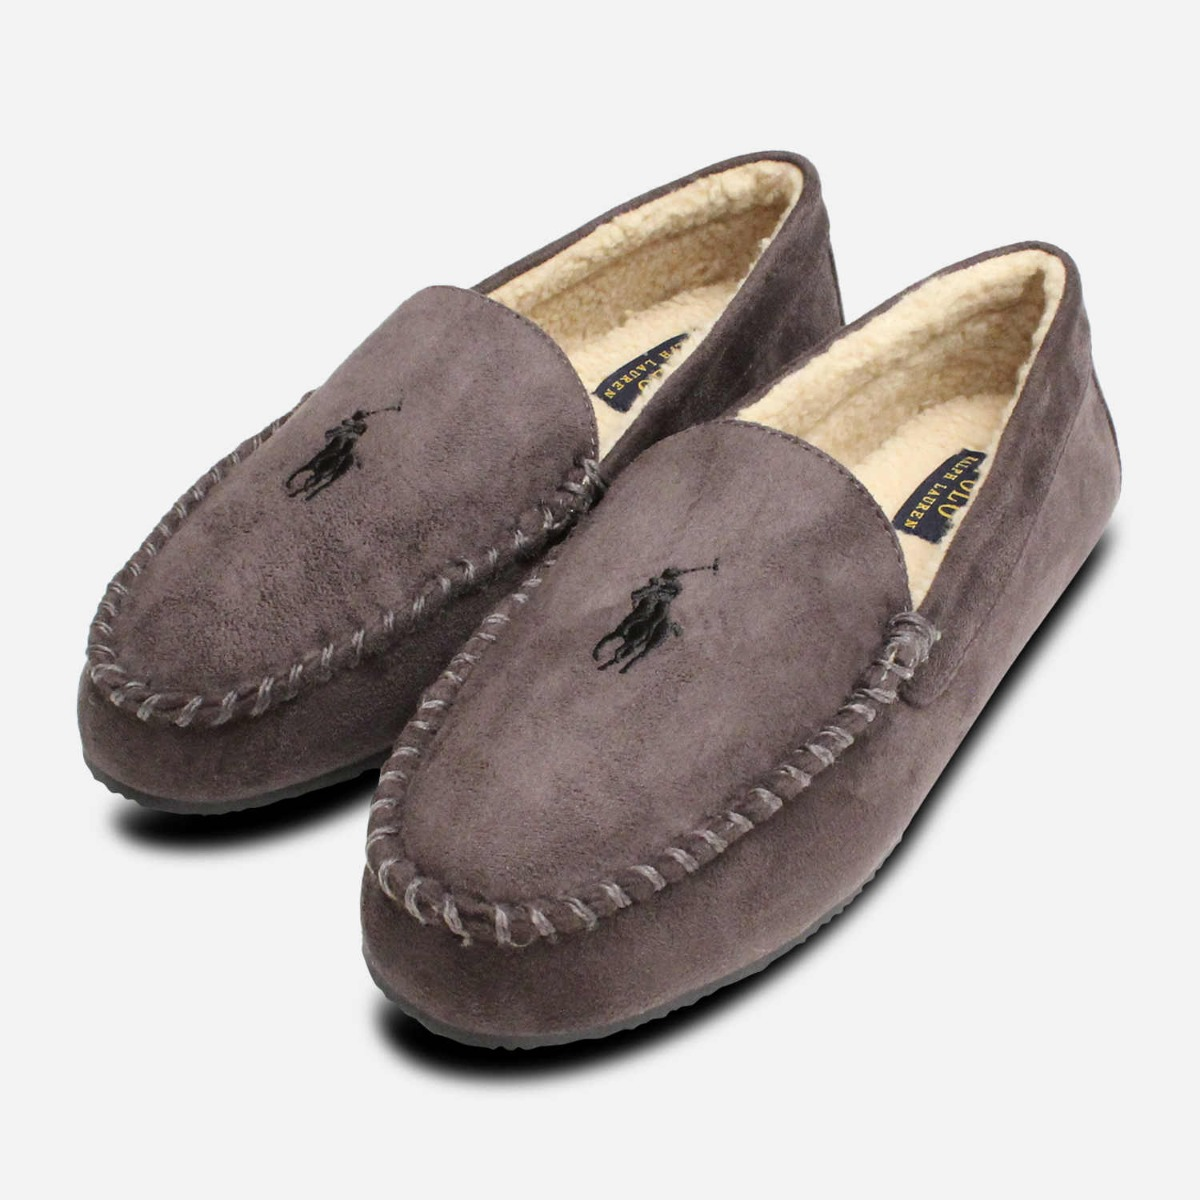 572e8f164a Details about Ralph Lauren Polo Charcoal Grey Mens Slippers